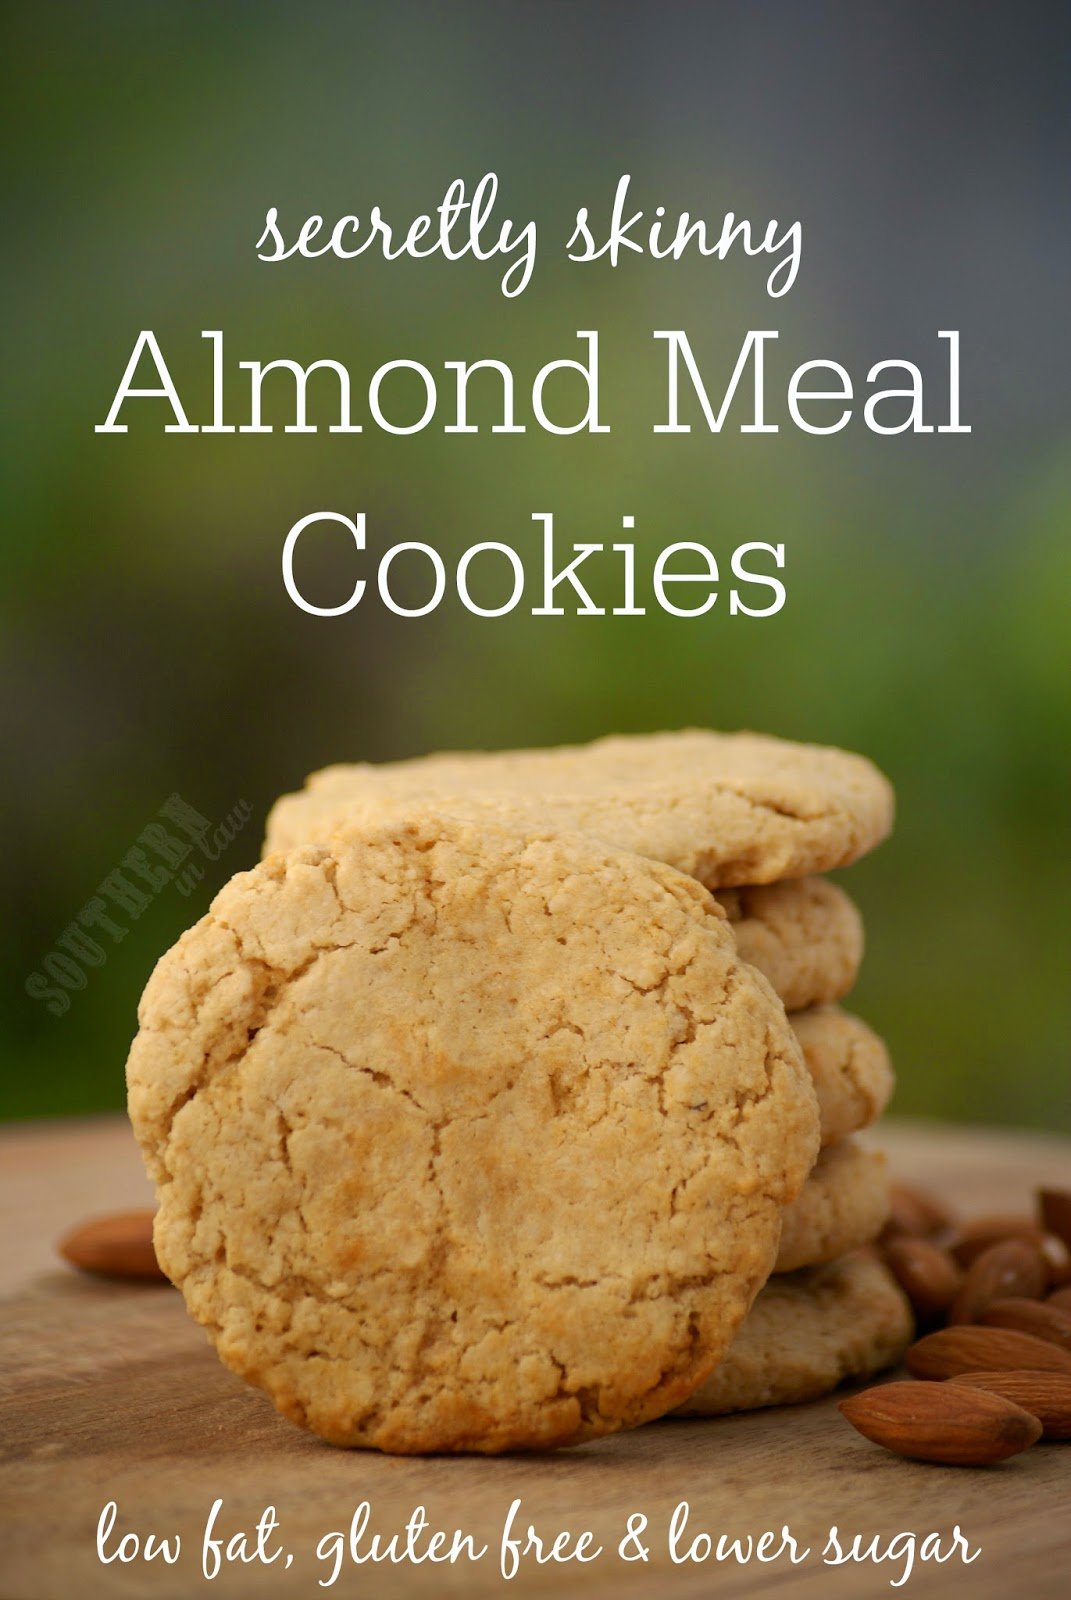 Gluten Free Skinny Almond Meal Cookies Recipe - Soft and Fluffy Almond Meal Cookies - gluten free, low fat, low sugar, one bowl cookie recipe, healthy